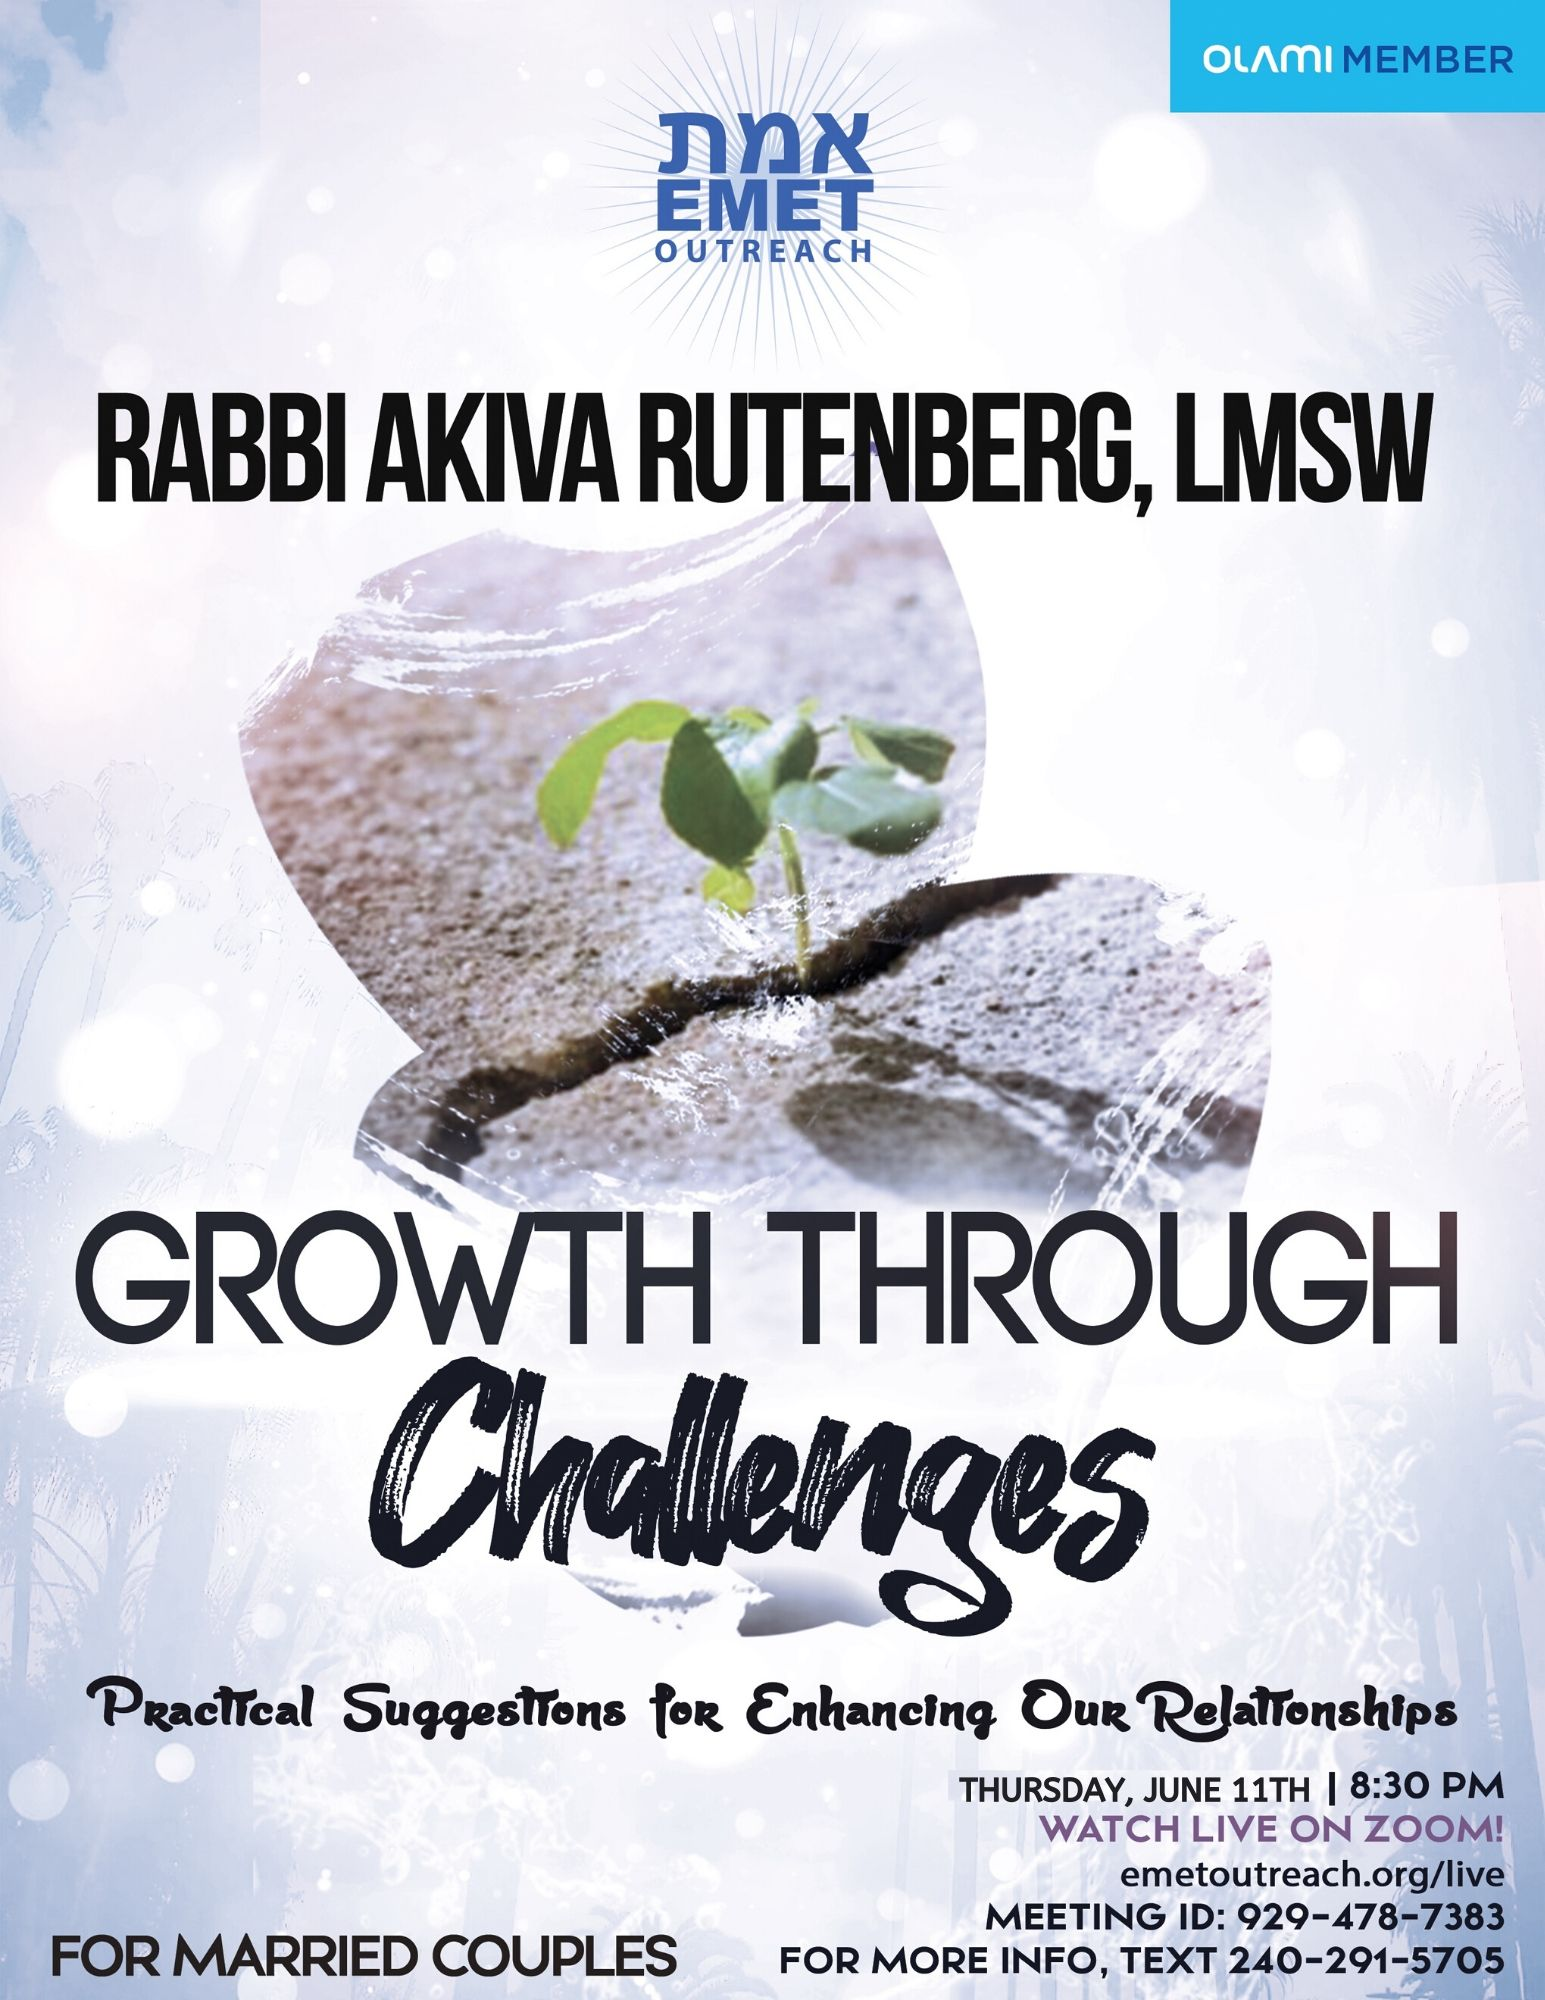 Growth through challenges